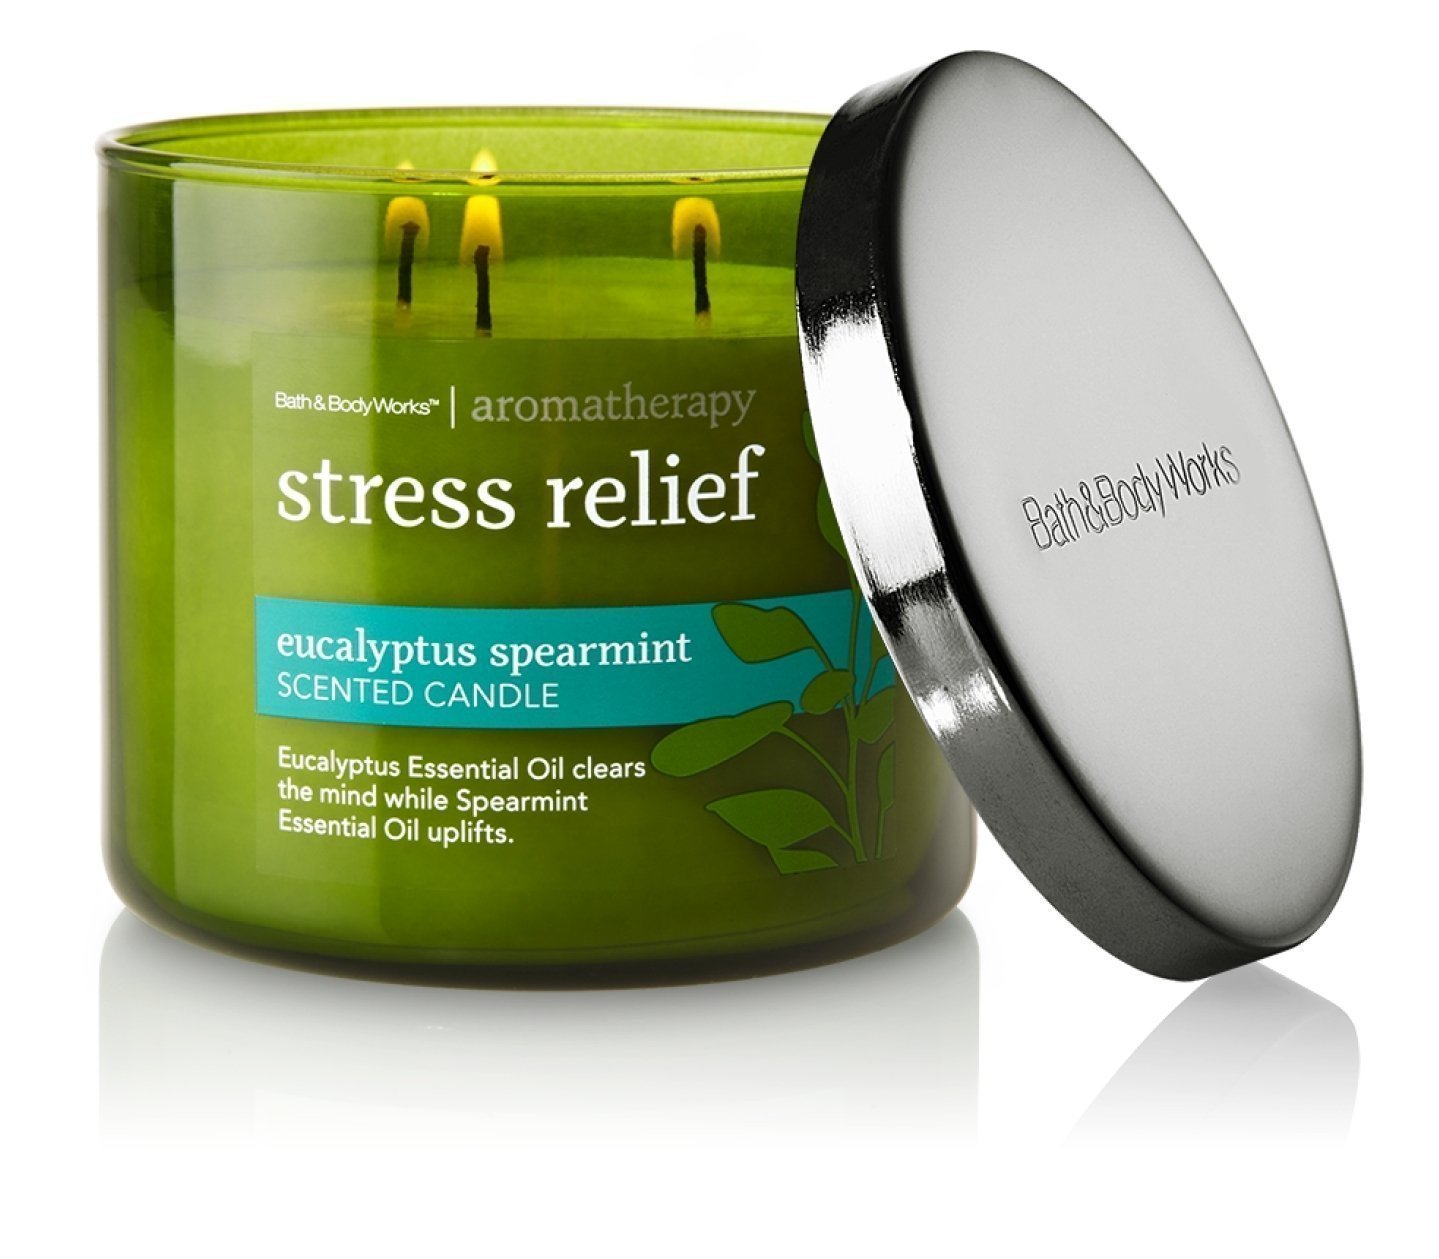 Bath and Body Works Stress Relief Candle